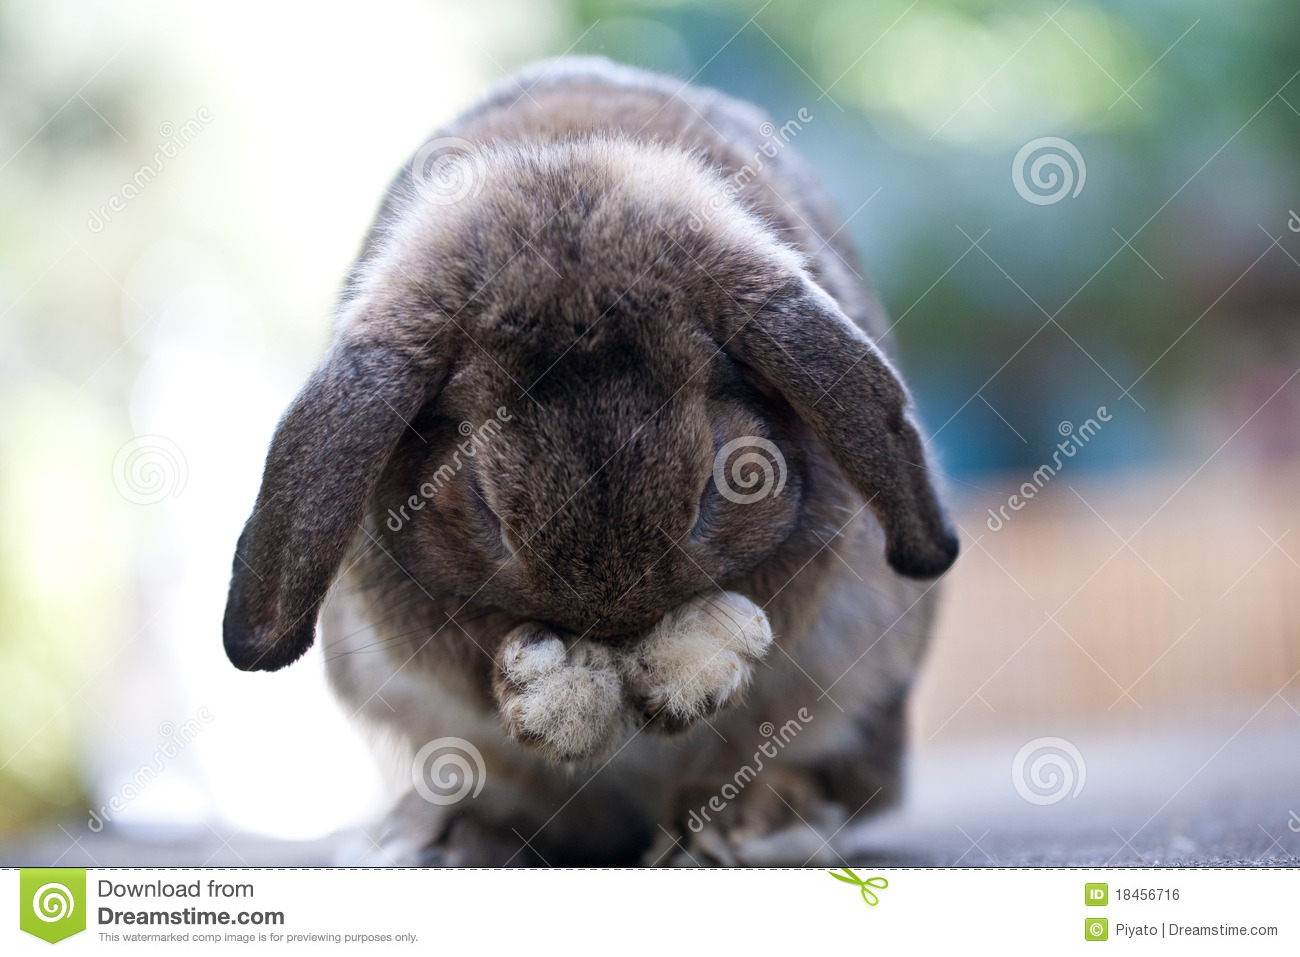 29 965 Cute Baby Bunny Photos Free Royalty Free Stock Photos From Dreamstime